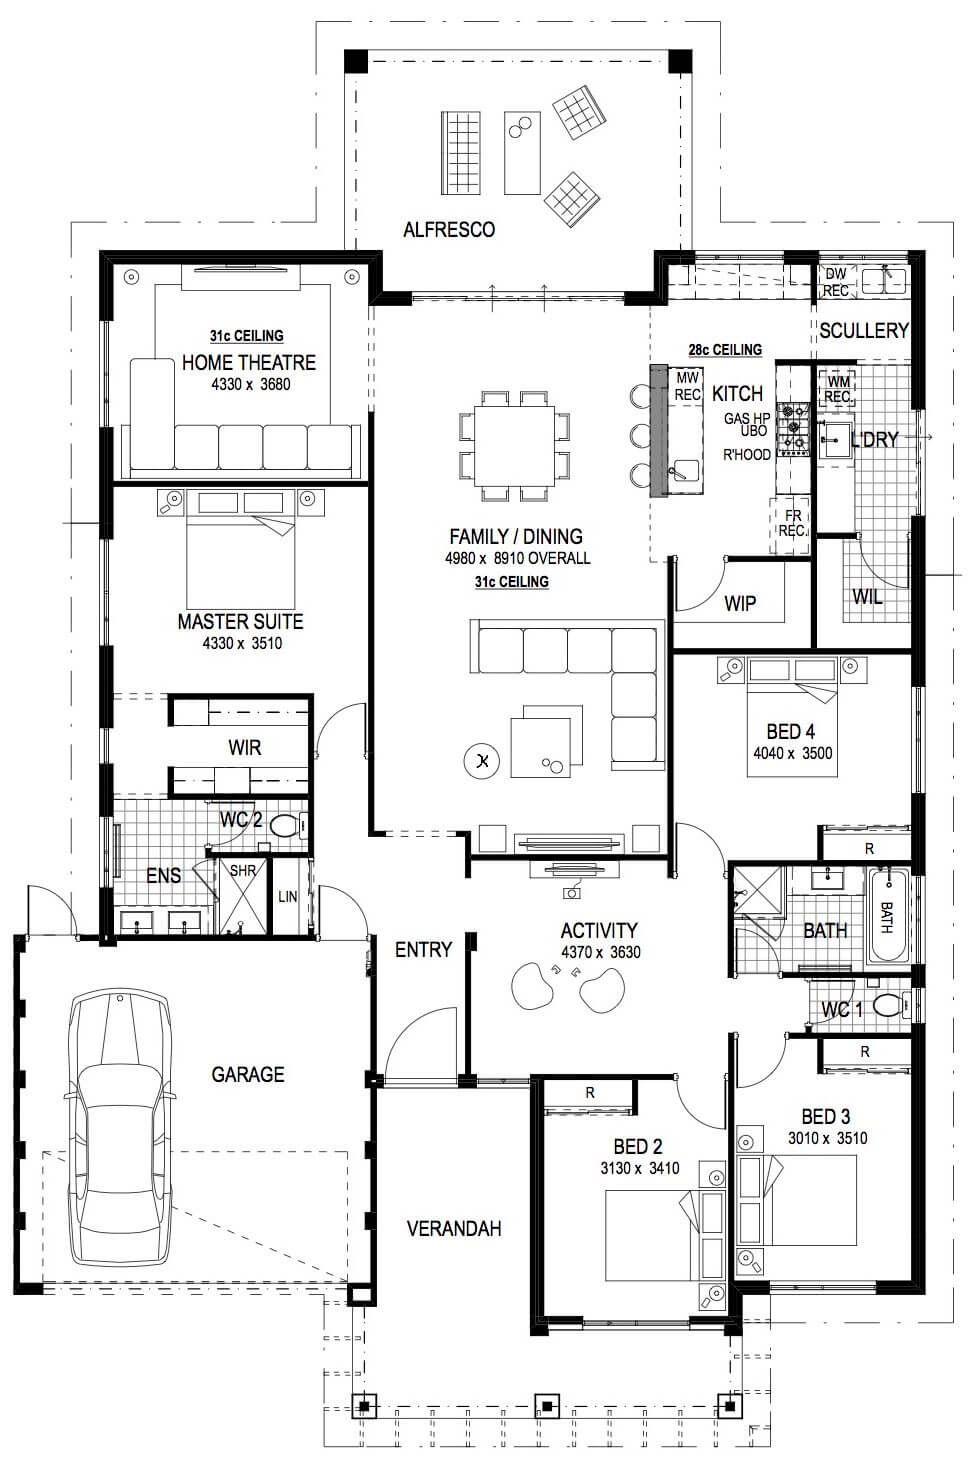 Display Homes Perth Wa Luxury Display Home Designs Impressions Modern House Floor Plans House Plans Australia Country House Floor Plan